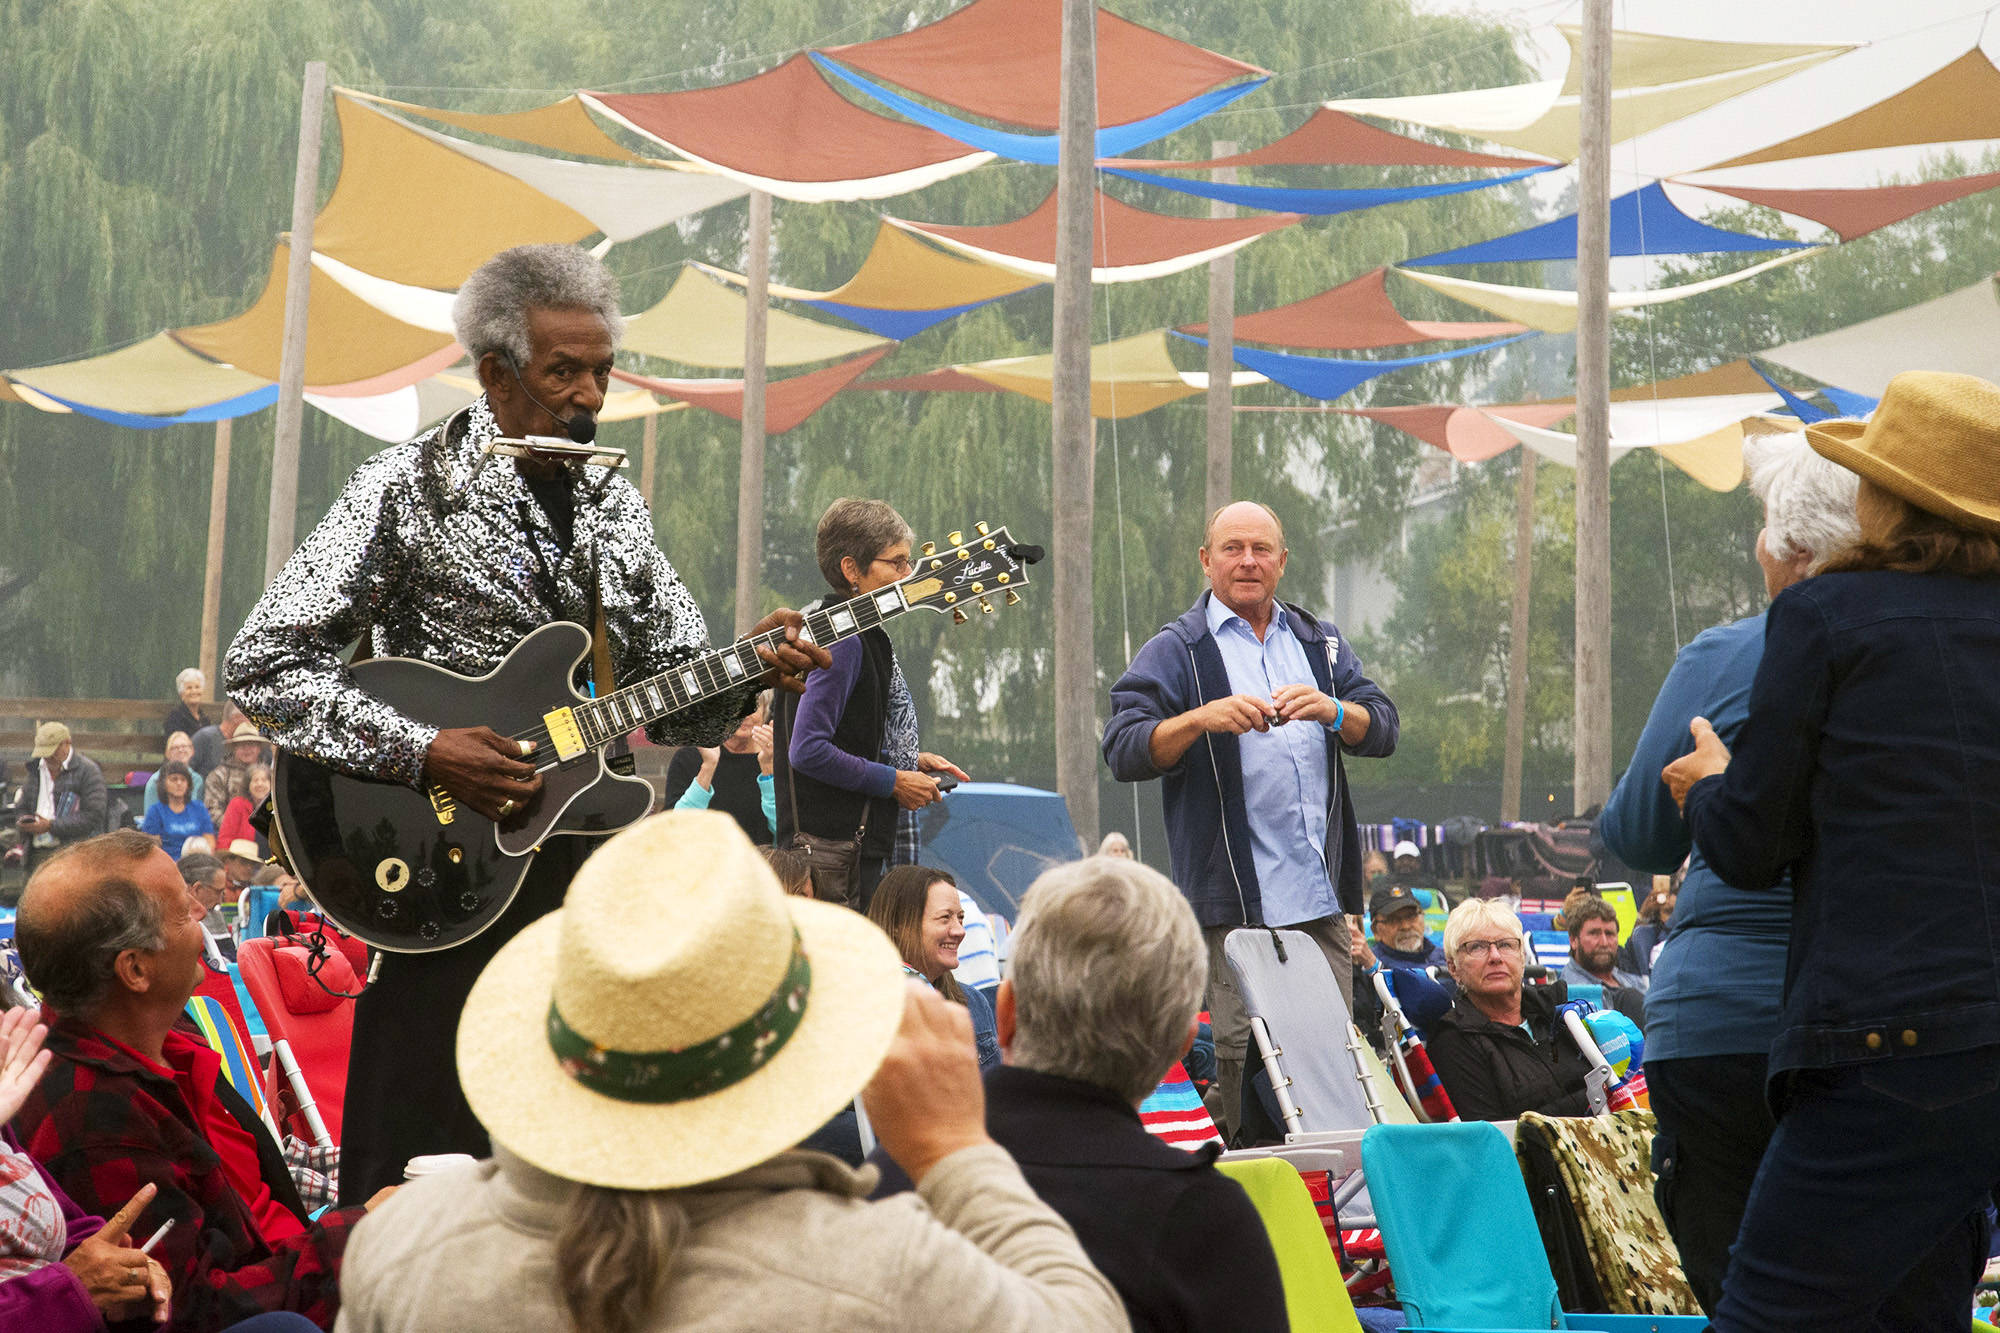 Lil Jimmy Reed keeps up the tune on guitar and harmonica after climbing down from the Roots & Blues main stage to walk amongst the crowd during the 2018 festival. Reed will be one of the performers featured in the online 2020 festival's first night. (Jim Elliot/Salmon Arm Observer)